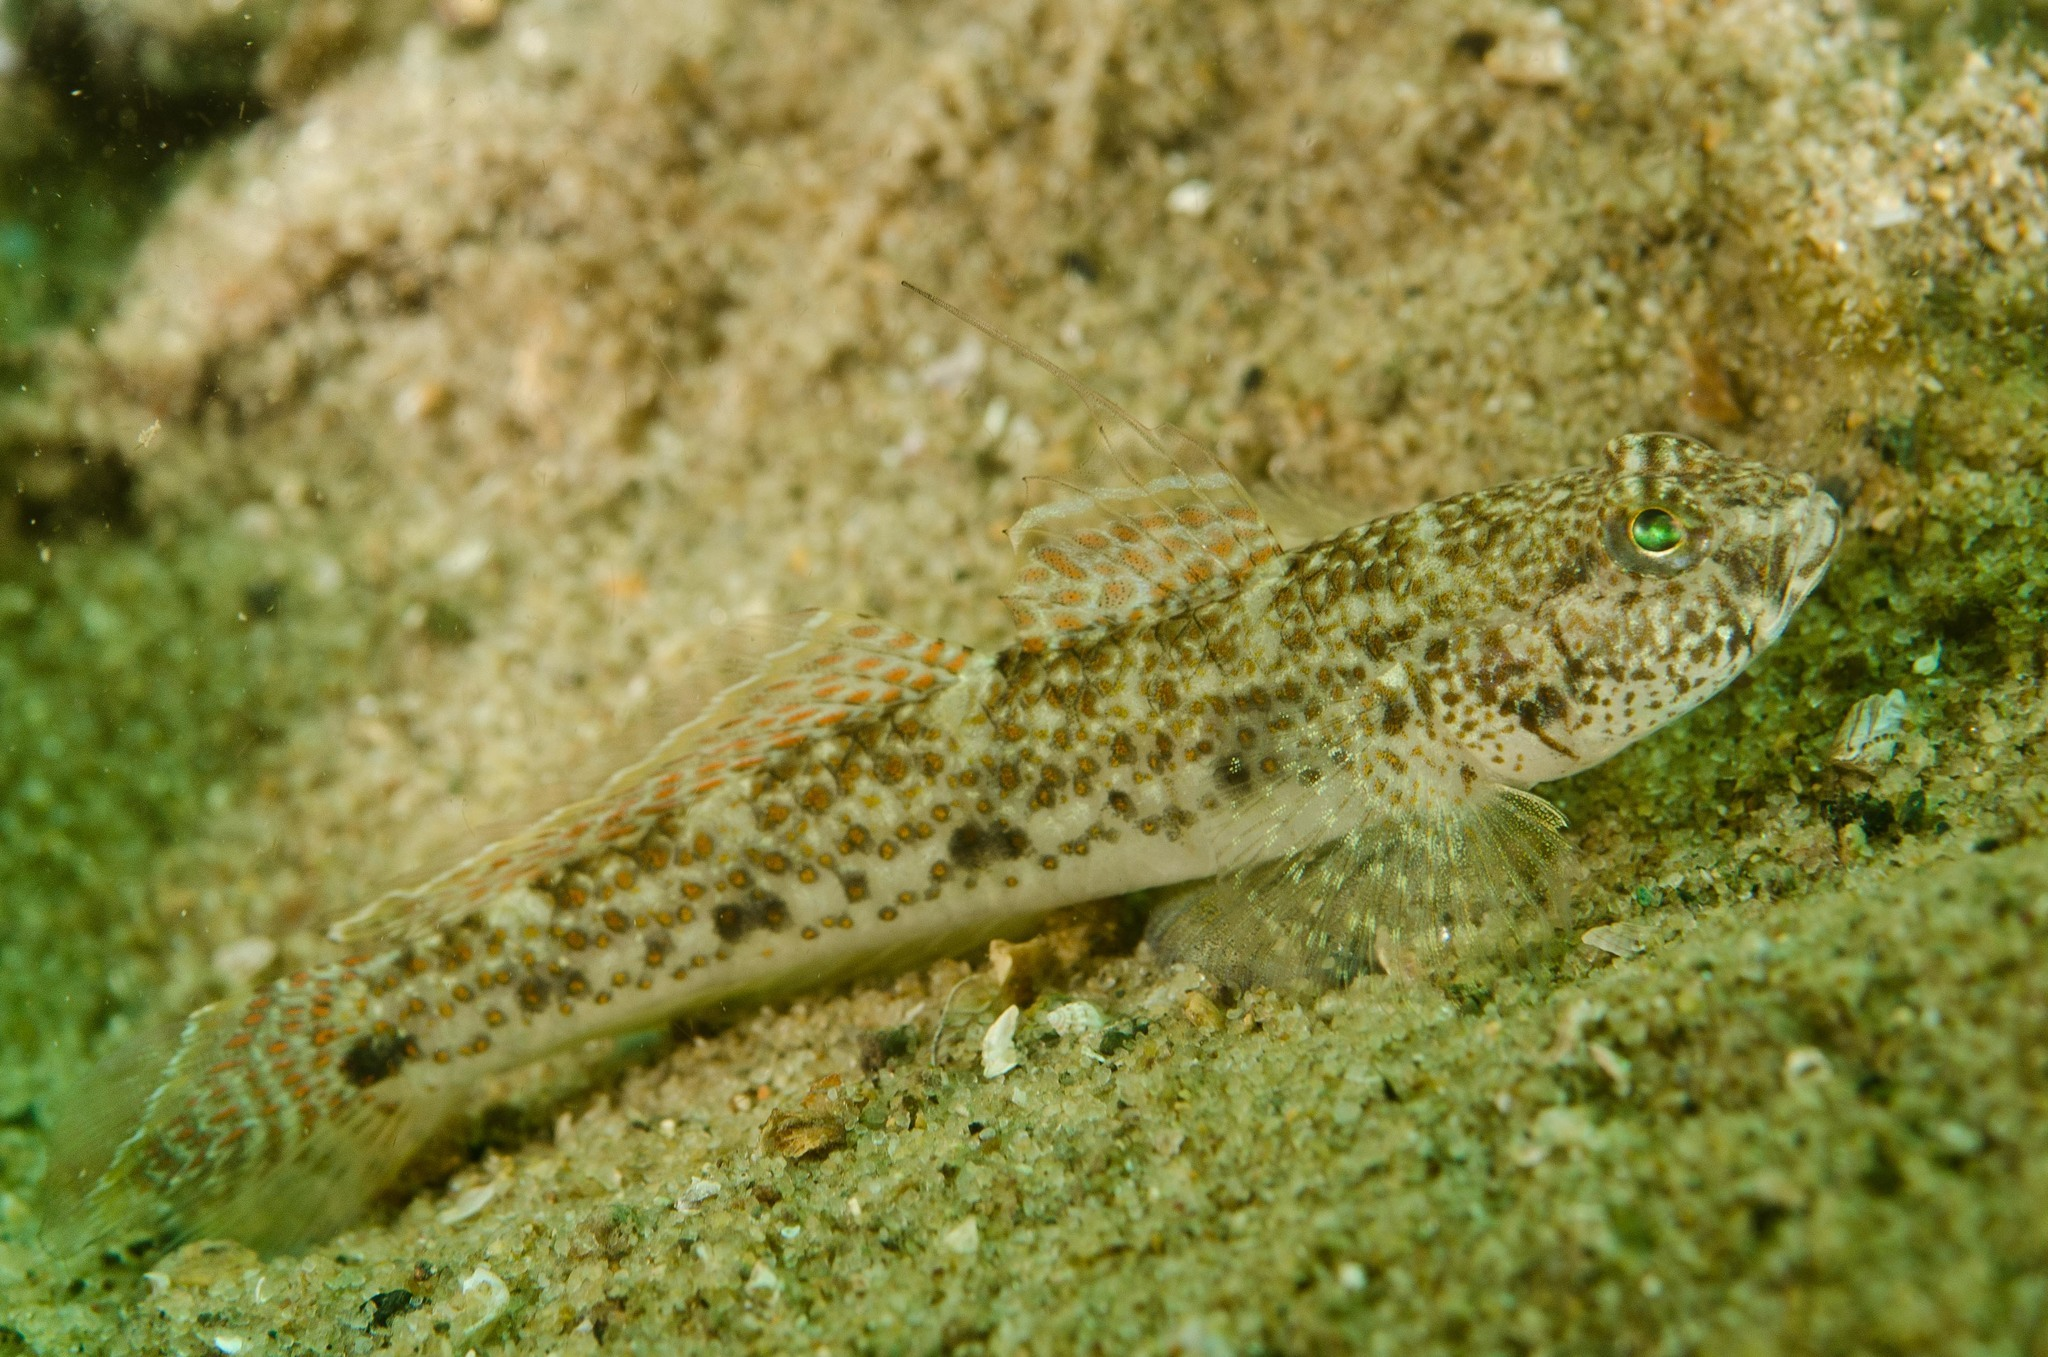 Image of Exquisite goby